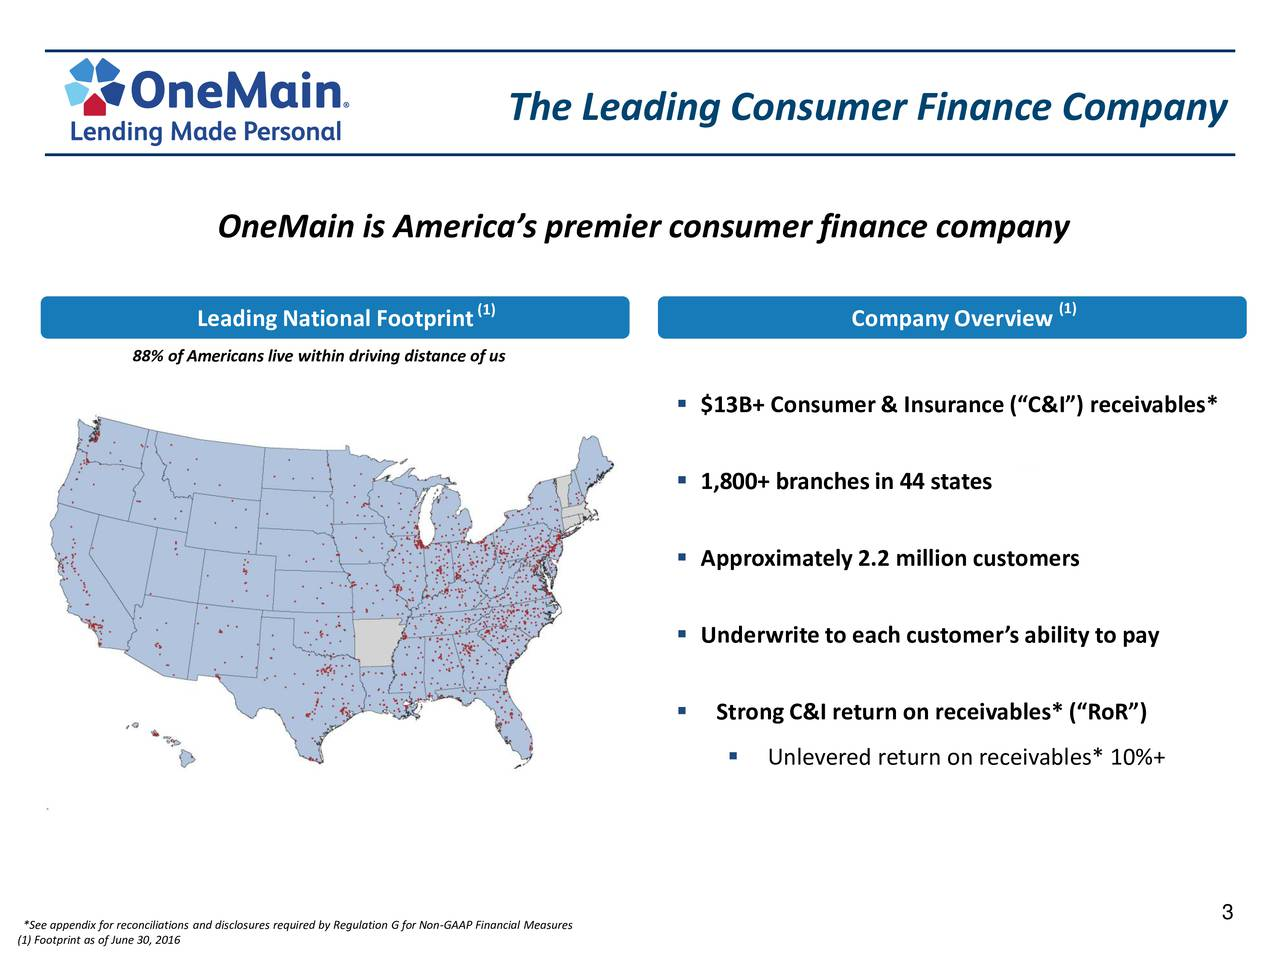 OneMain is Americas premier consumer finance company Leading National Footprint (1) CompanyOverview (1) 88% of Americans live within driving distance of us $13B+ Consumer & Insurance(C&I) receivables* 1,800+ branchesin 44 states (1) Approximately2.2 million customers Underwriteto each customers ability to pay Strong C&I return on receivables*(RoR) Unlevered return on receivables* 10%+ 3 (1) Footprint as of June 30, 2016s and disclosures required by Regulation G for Non-GAAP Financial Measures